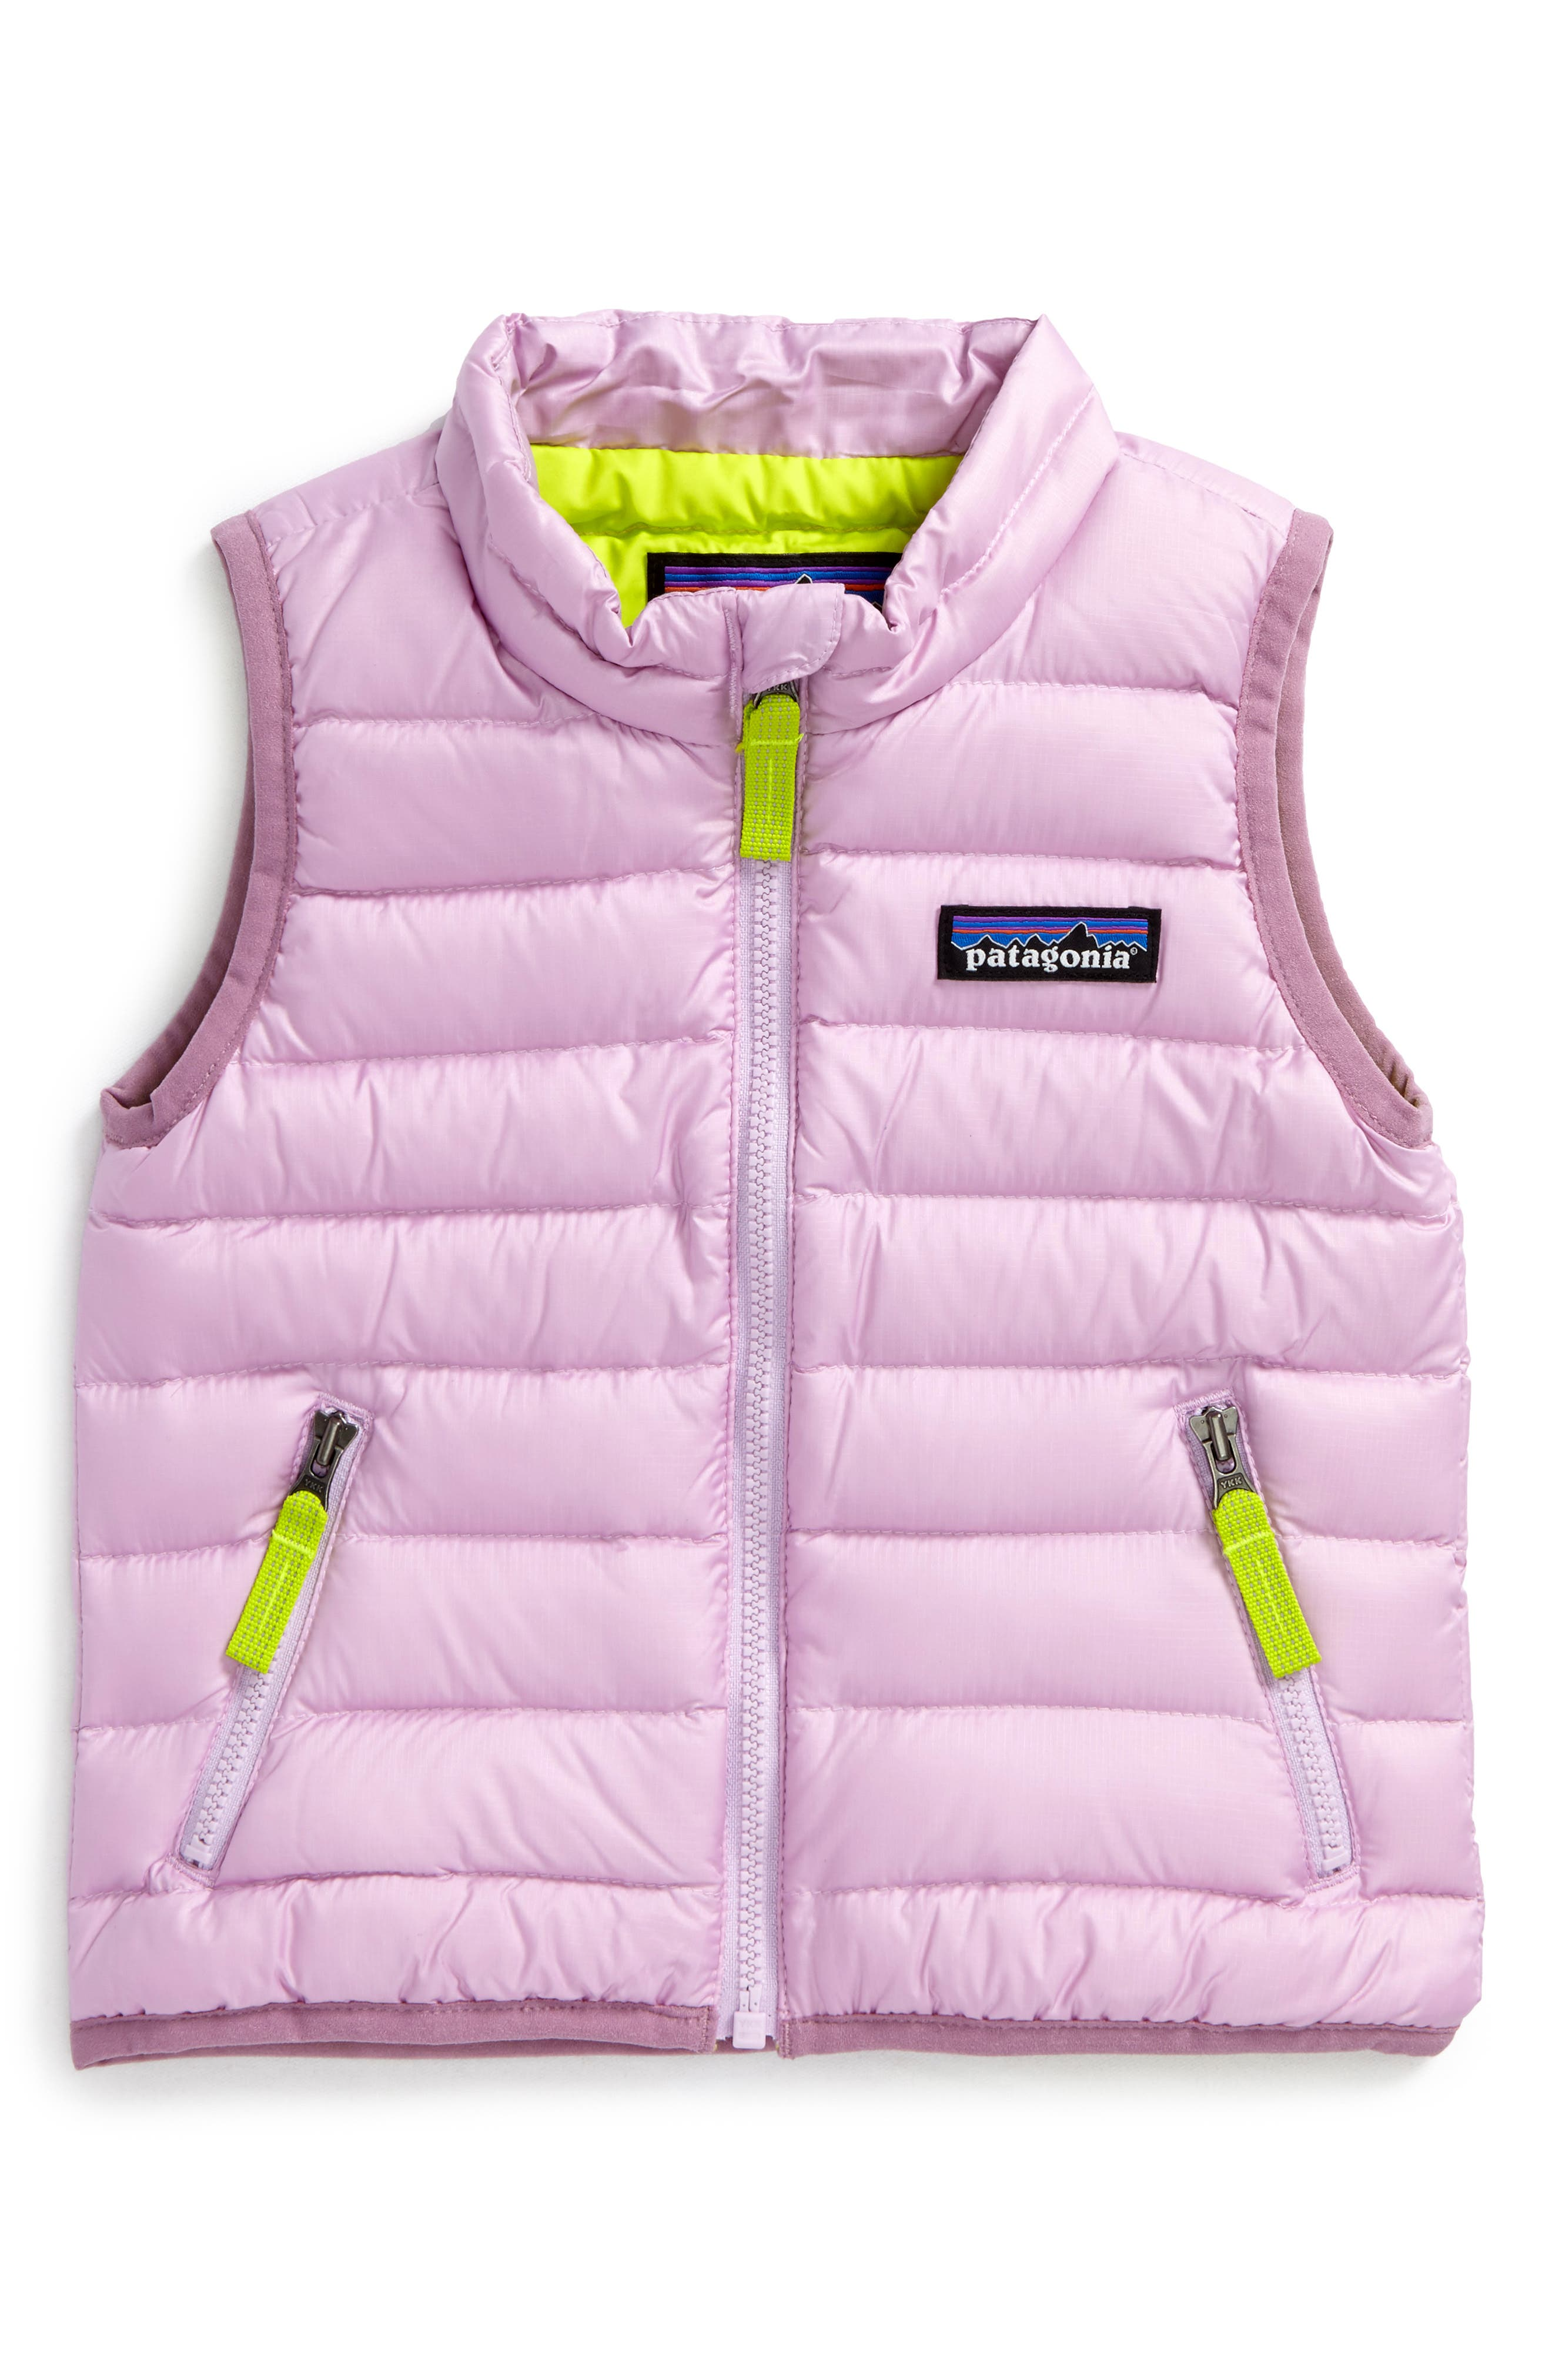 Alternate Image 1 Selected - Patagonia Water Repellent Down Sweater Vest (Baby Girls)